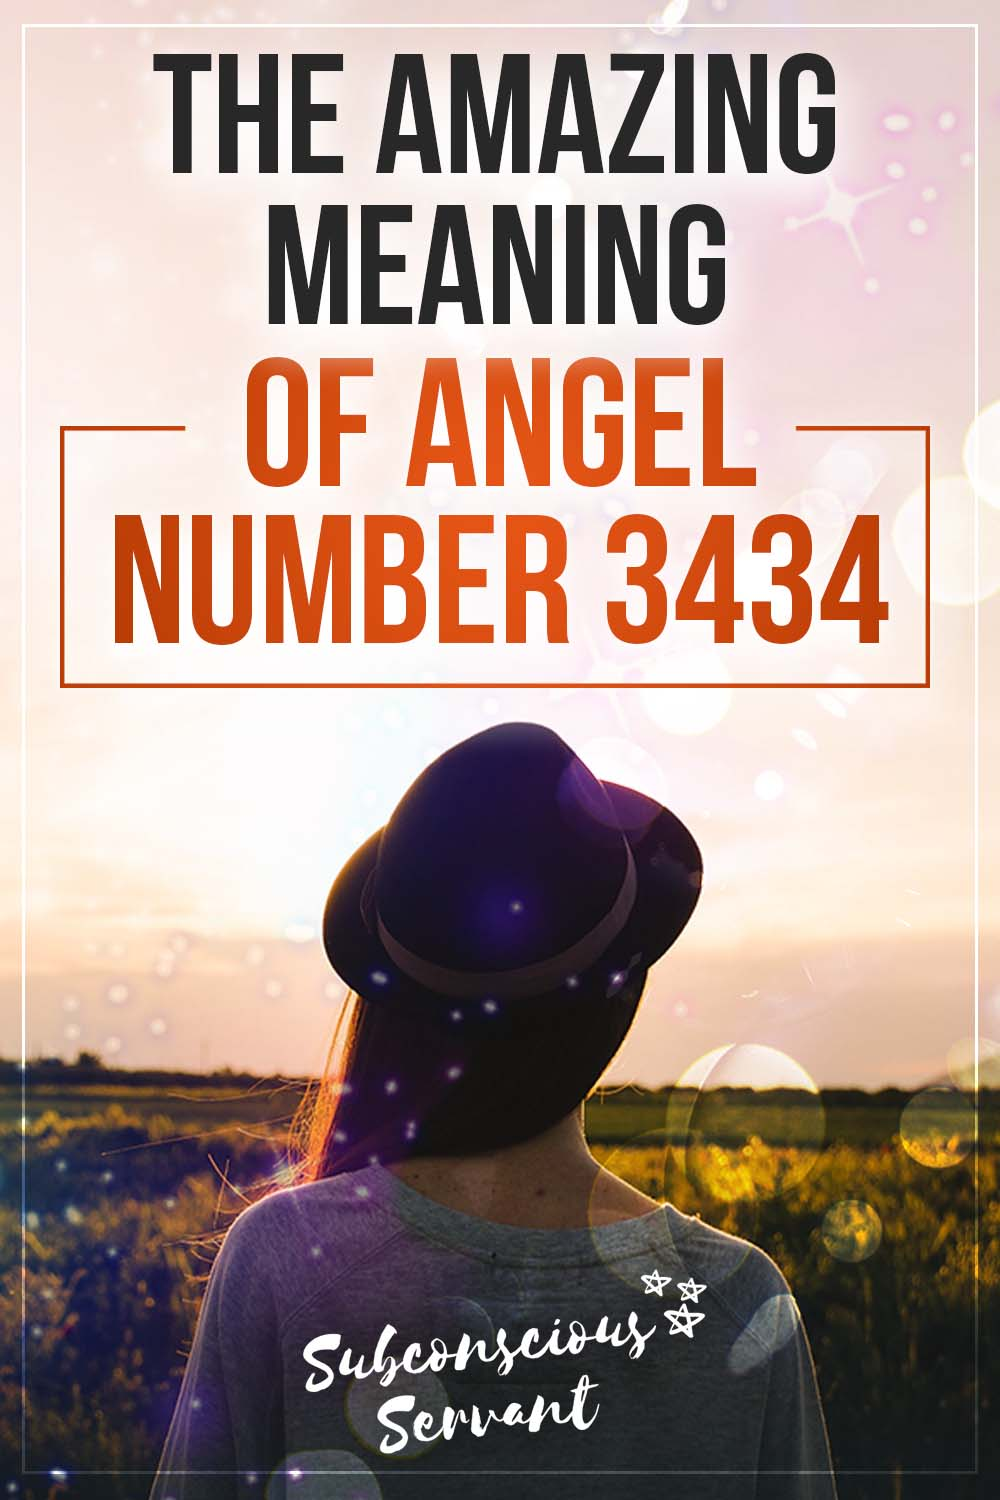 Noticing 3434? Here\'s The Amazing Meaning Of Angel Number 3434